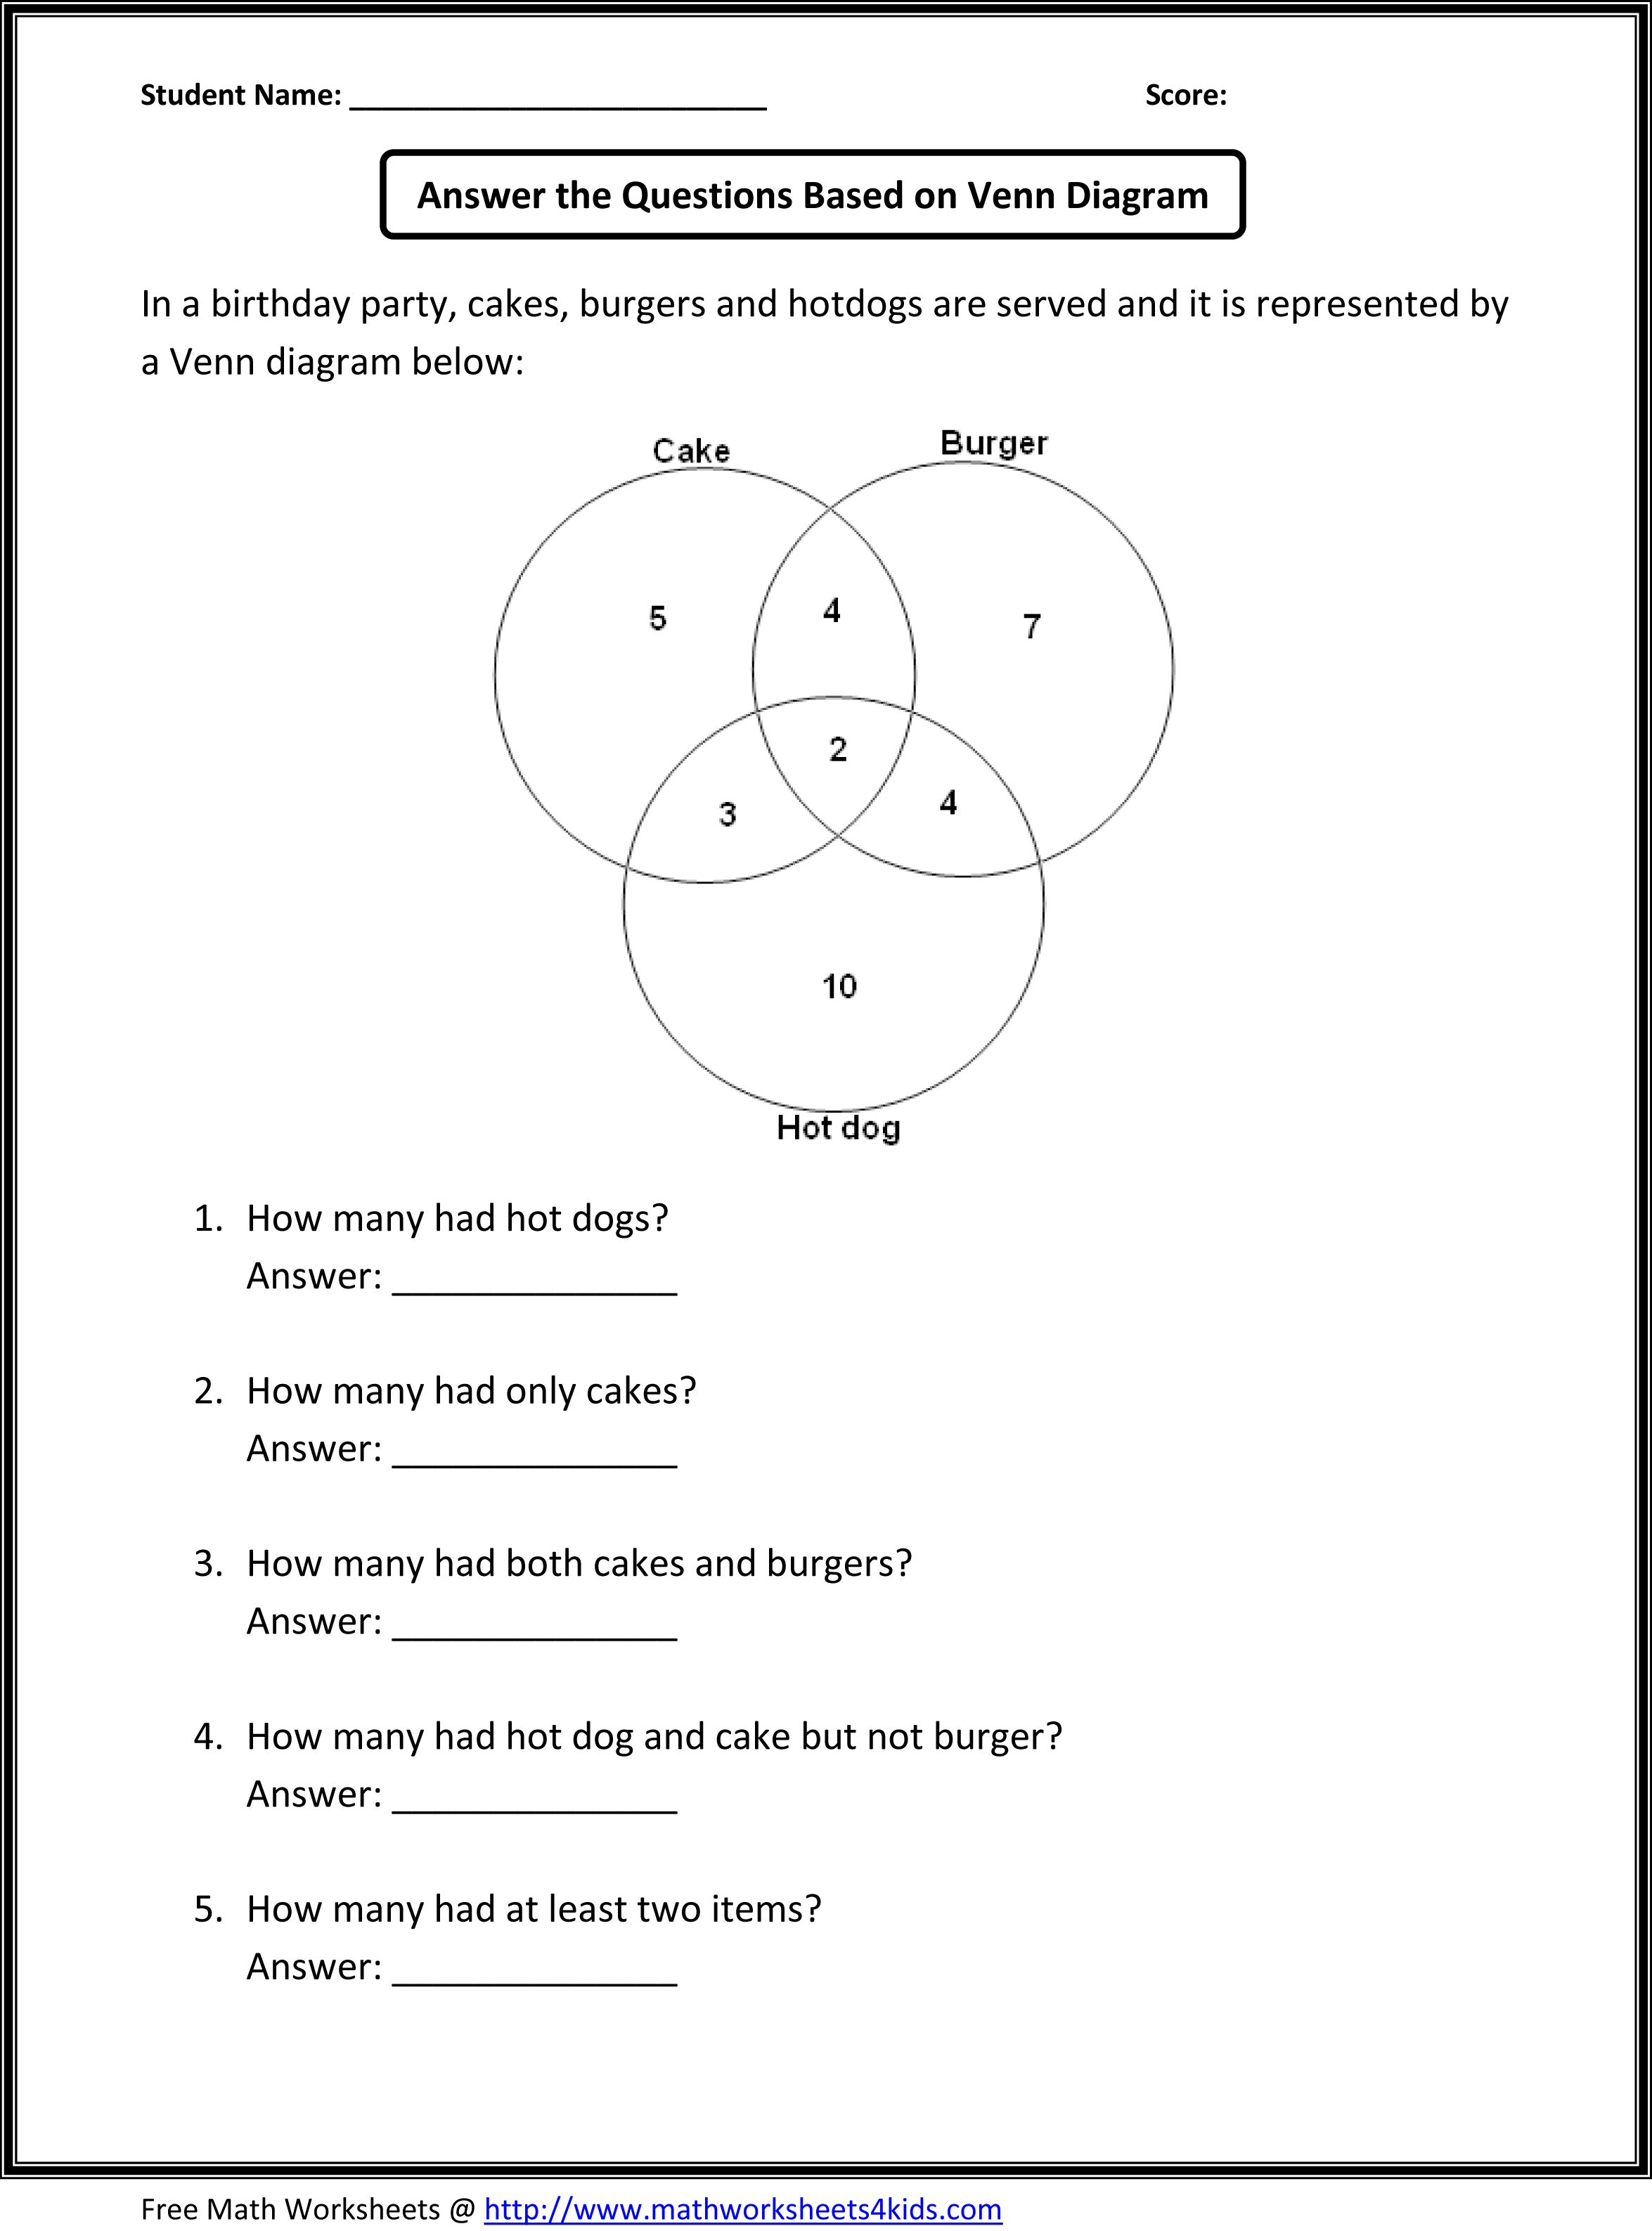 Worksheets Common Core Math Worksheets For 5th Grade do my paper custom term research thesis perimeter worksheets common core math th grade edition at create teach share